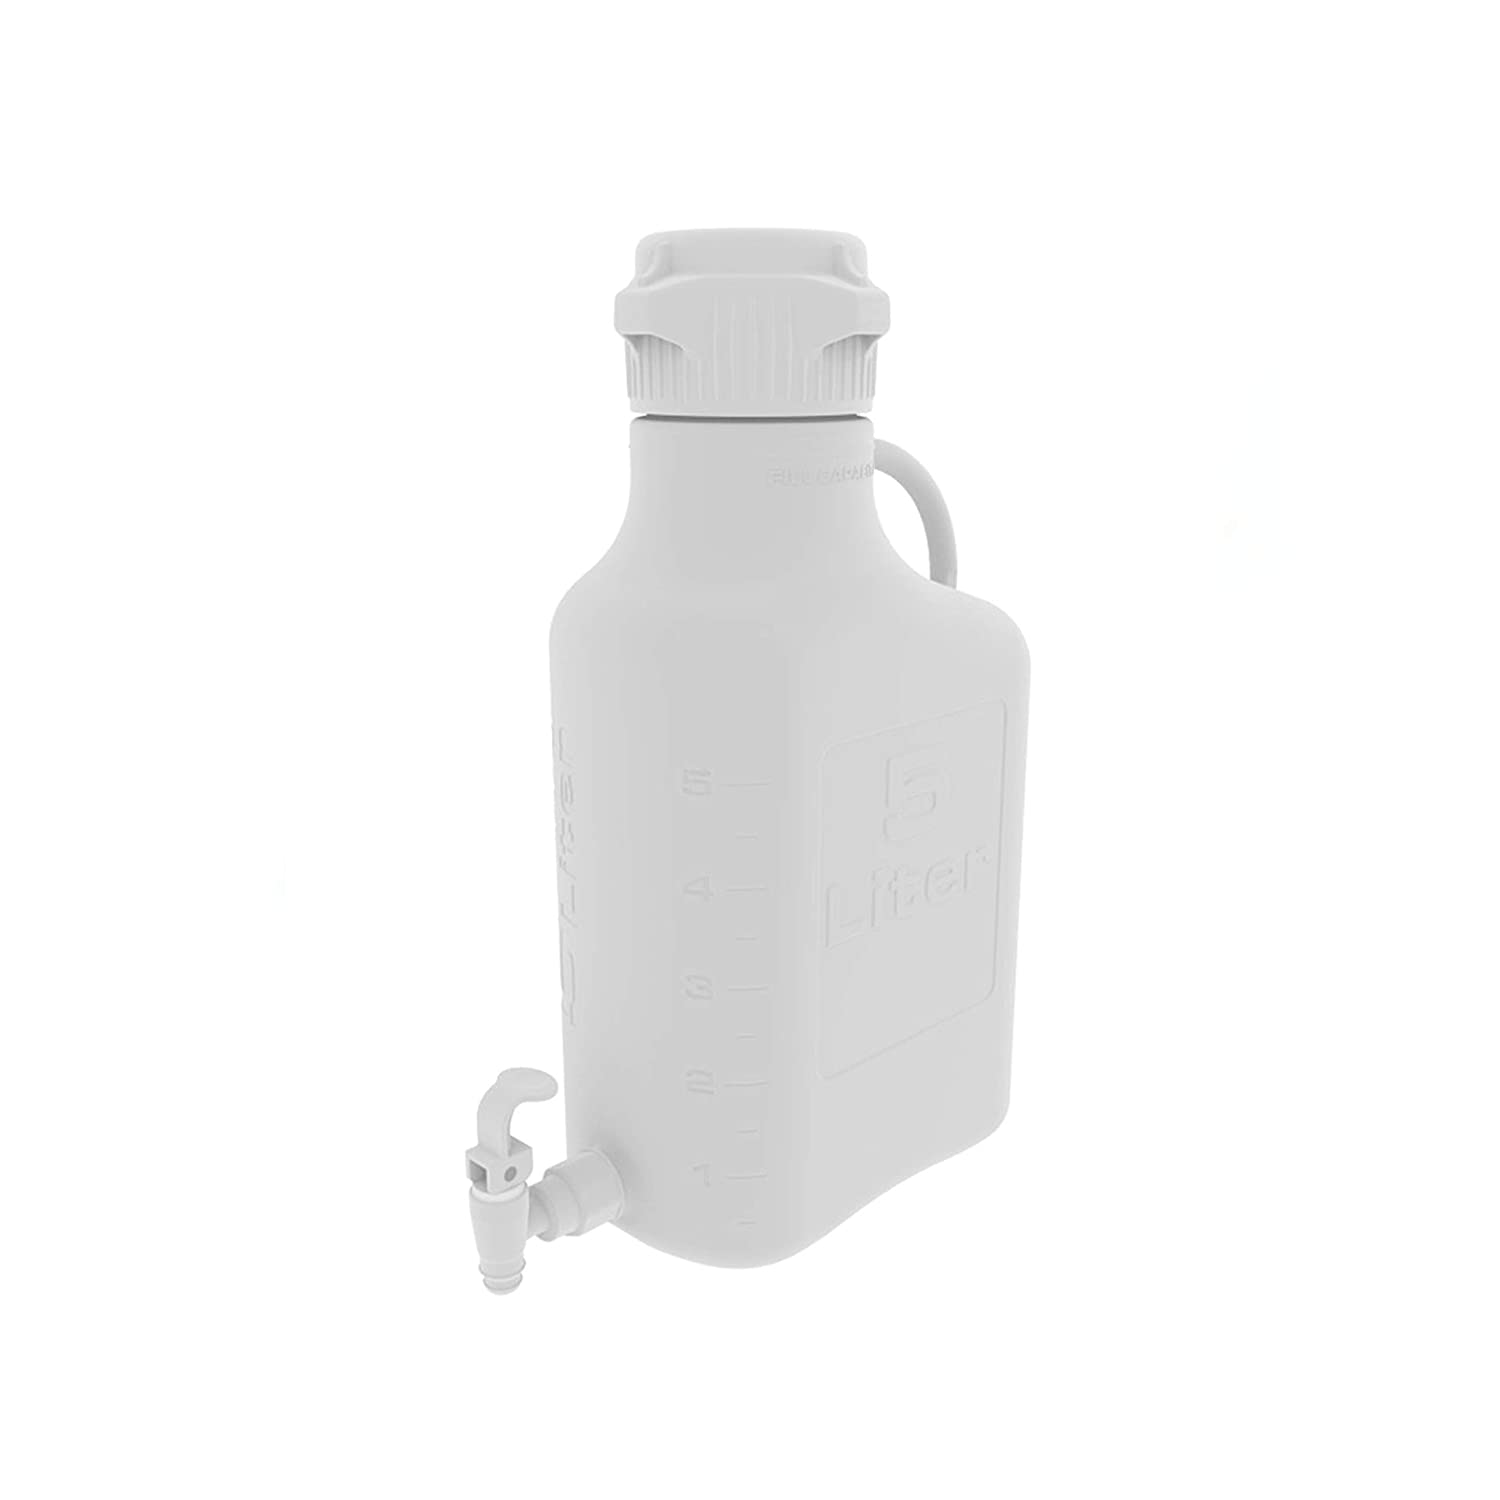 Ranking TOP13 EZgrip 5L 1 Gal HDPE Space Saving Spigot Leakproof with Carboy Be super welcome